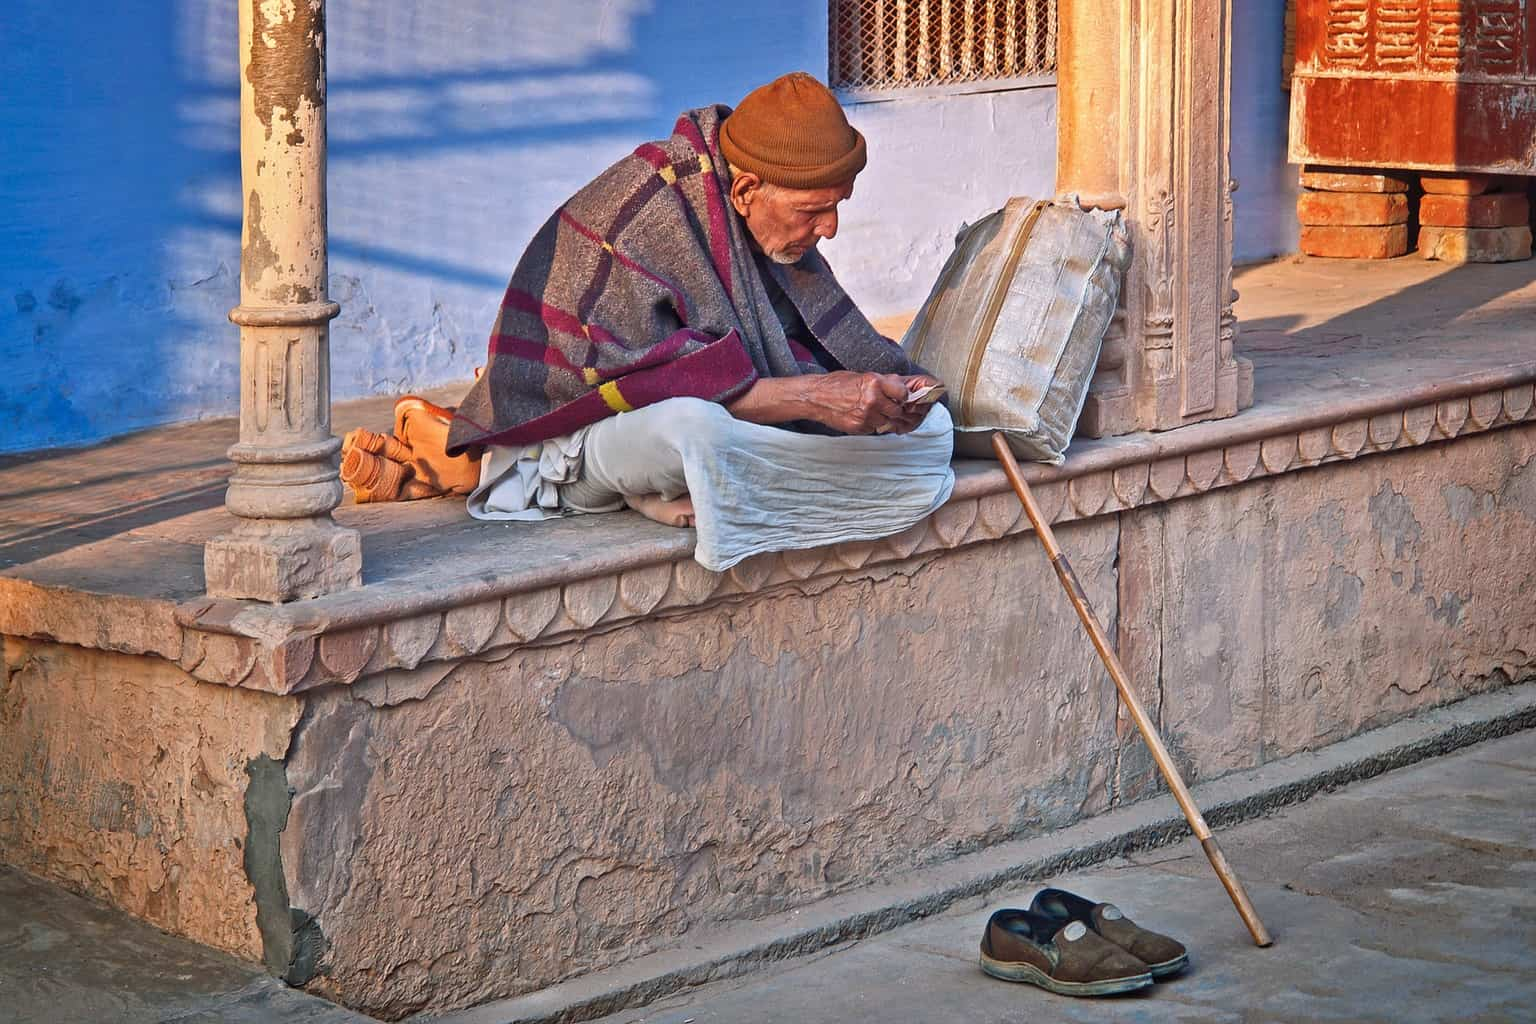 An old man sitting on a wall with a cane and shoes on the ground